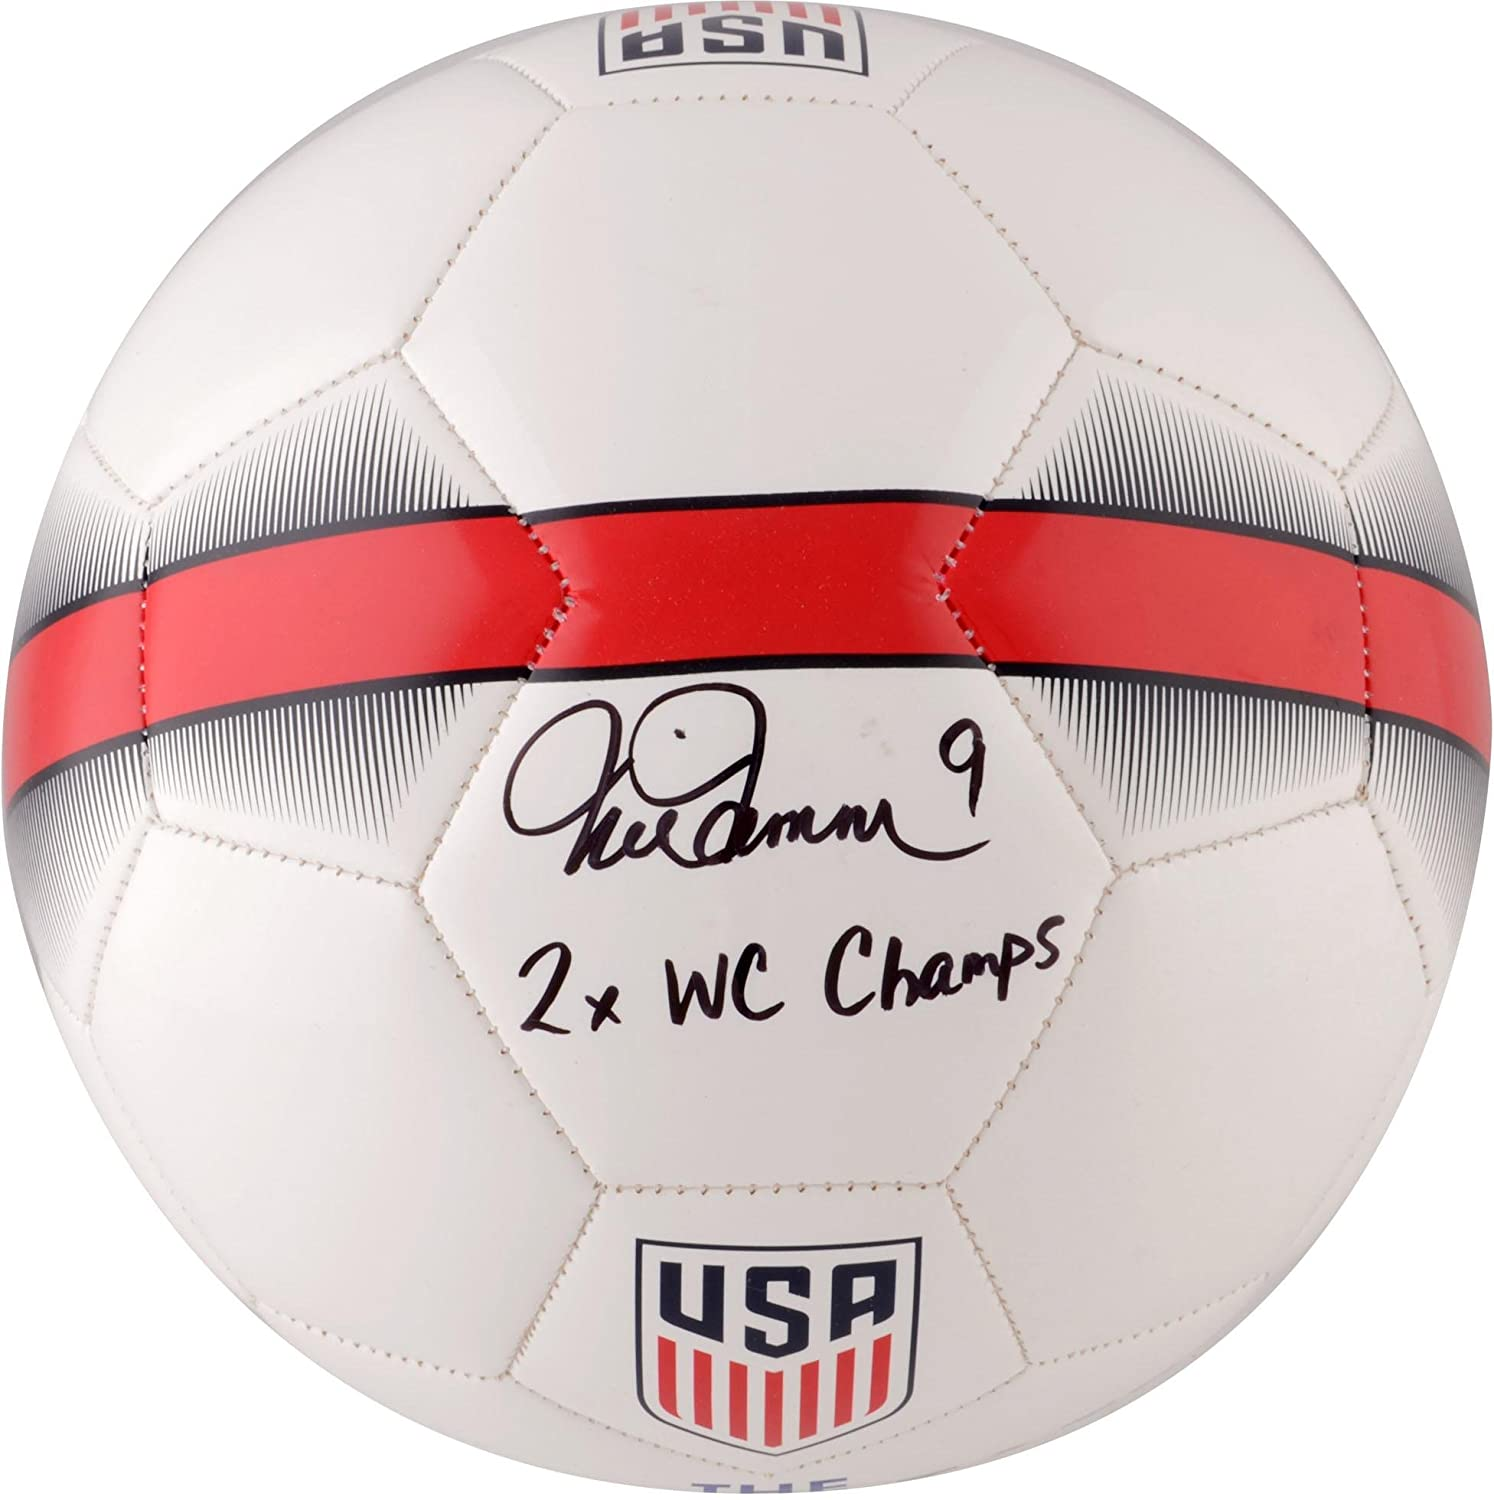 Mia Hamm Team USA Autographed Nike White Soccer Ball with'2X WC Champ' Inscription - Fanatics Authentic Certified